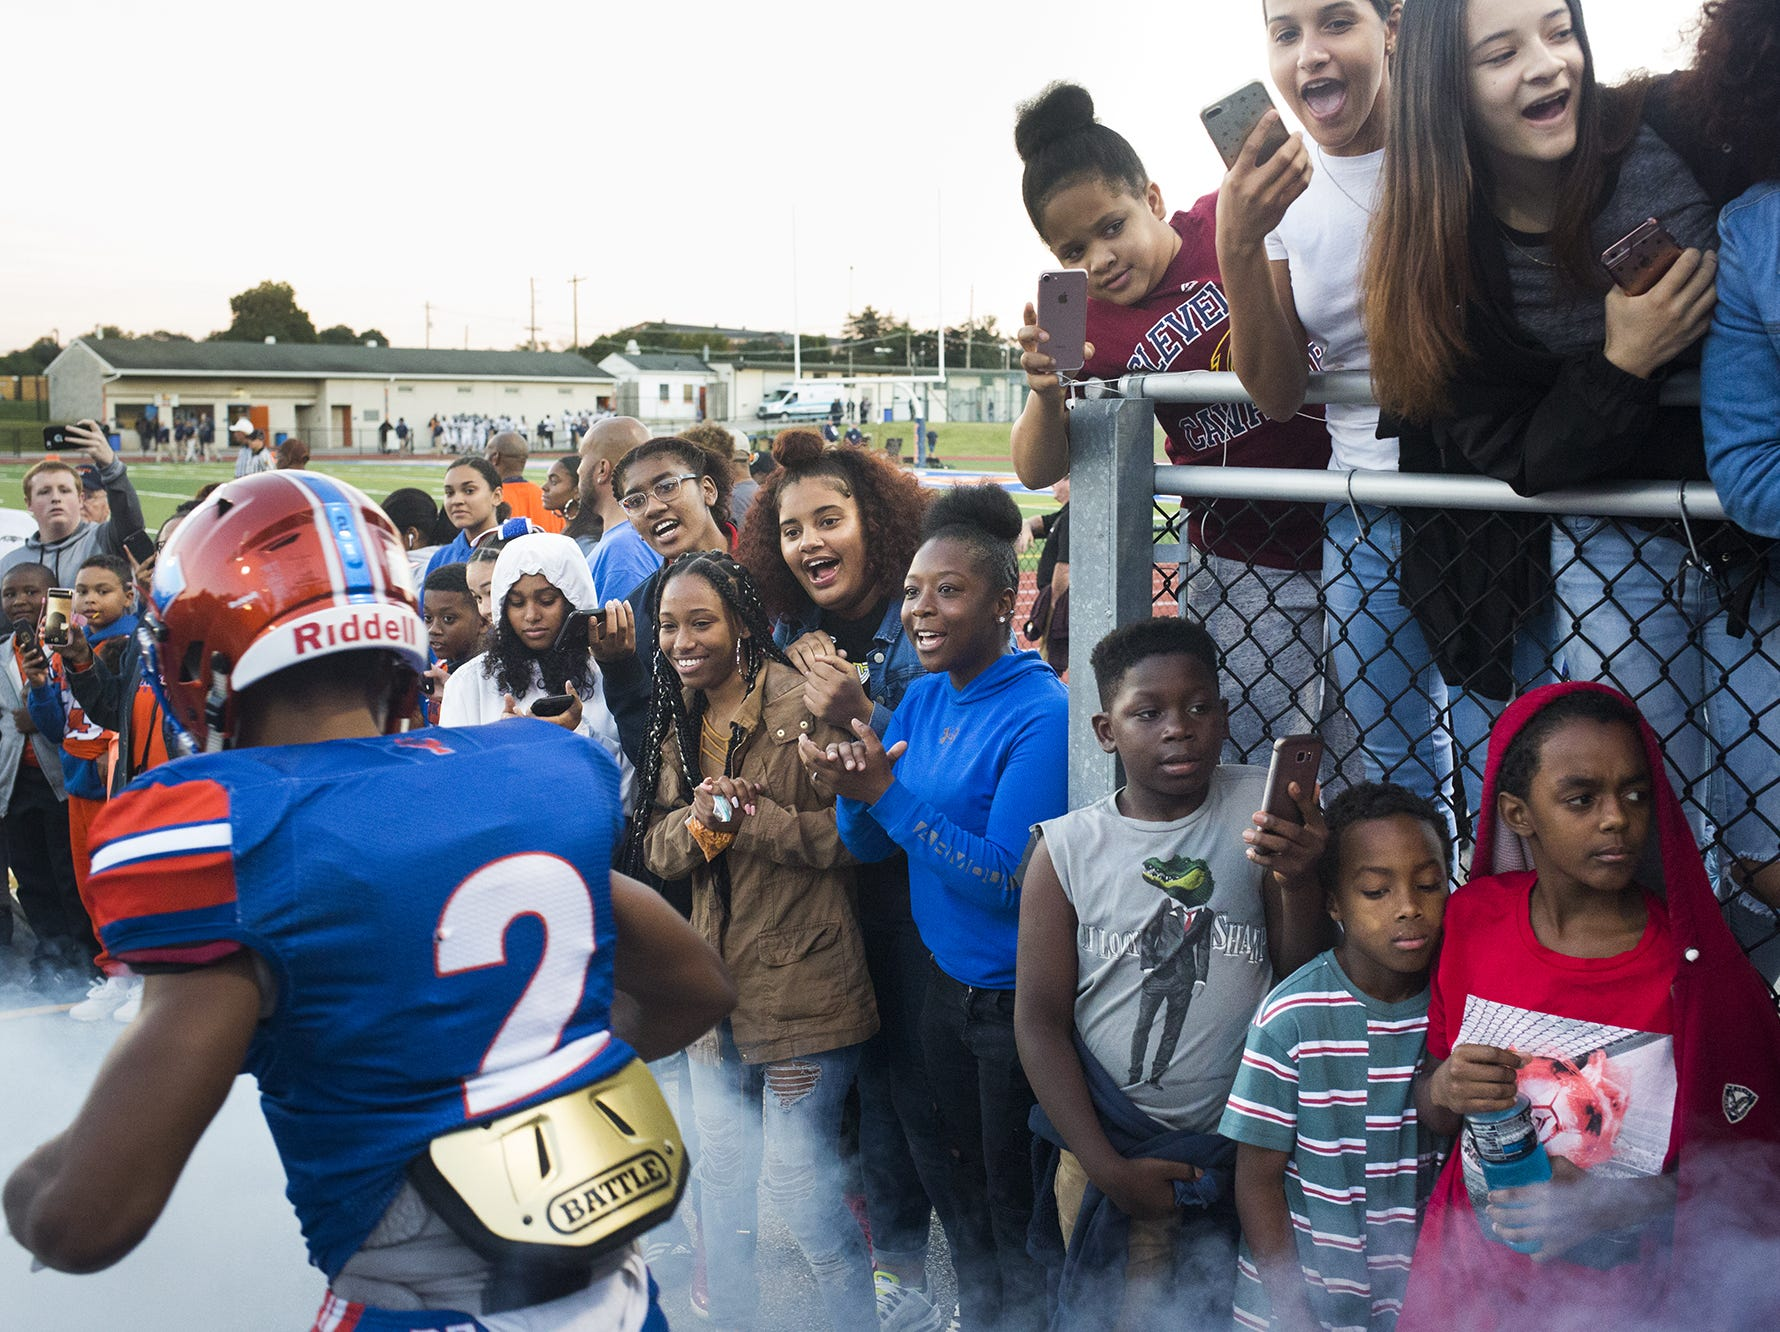 York High fans cheer as the team take s the field prior to the game. York High hosted Dallastown in football at Small Athletic Field in York, Friday, September 28, 2018.